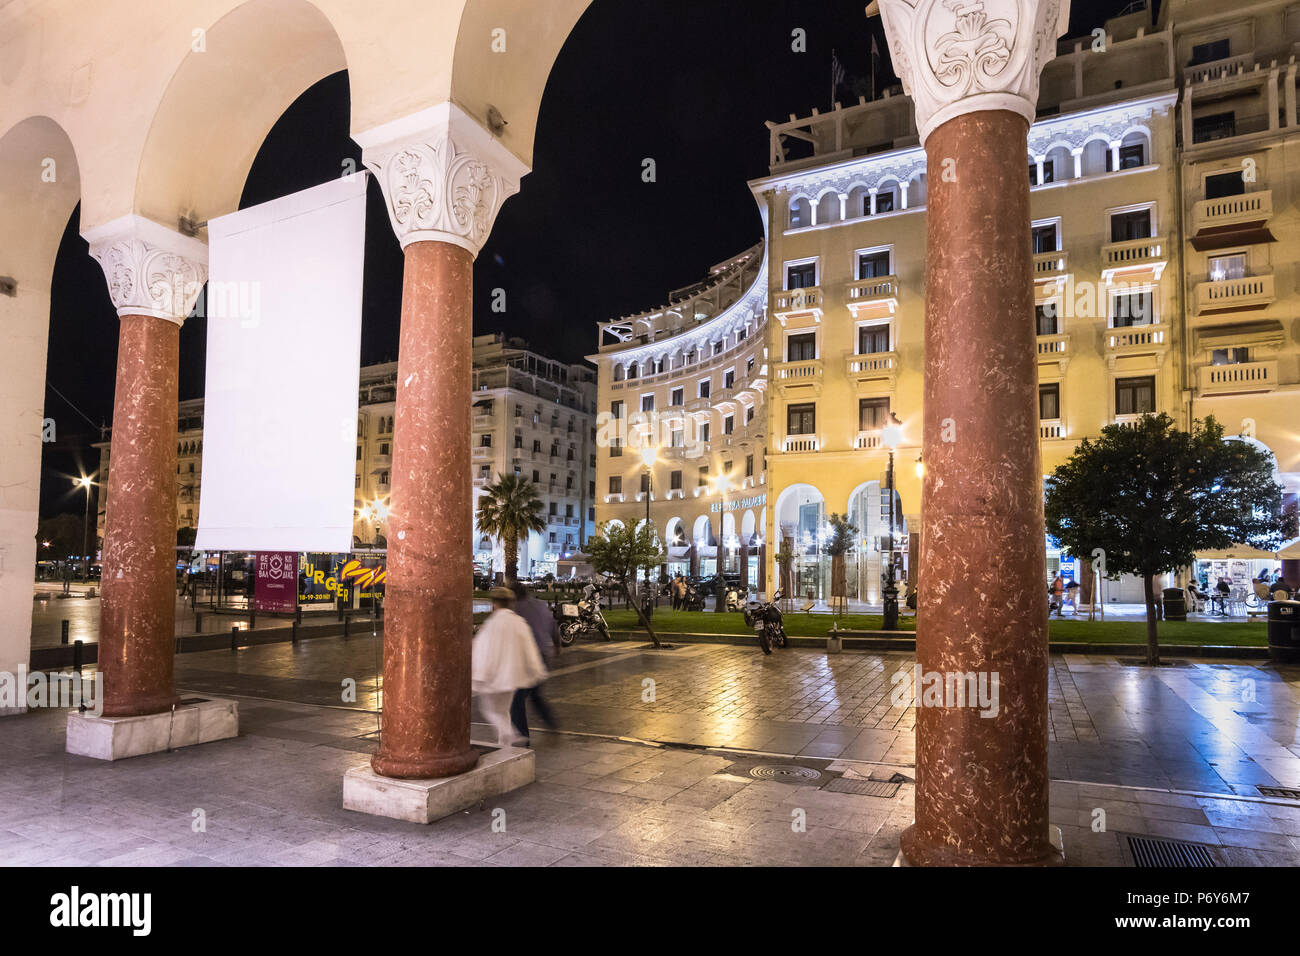 Aristotelous Square seen from its arcade looking towards the Electra Palace Hotel. Thessaloniki Macedonia, Northern Greece - Stock Image